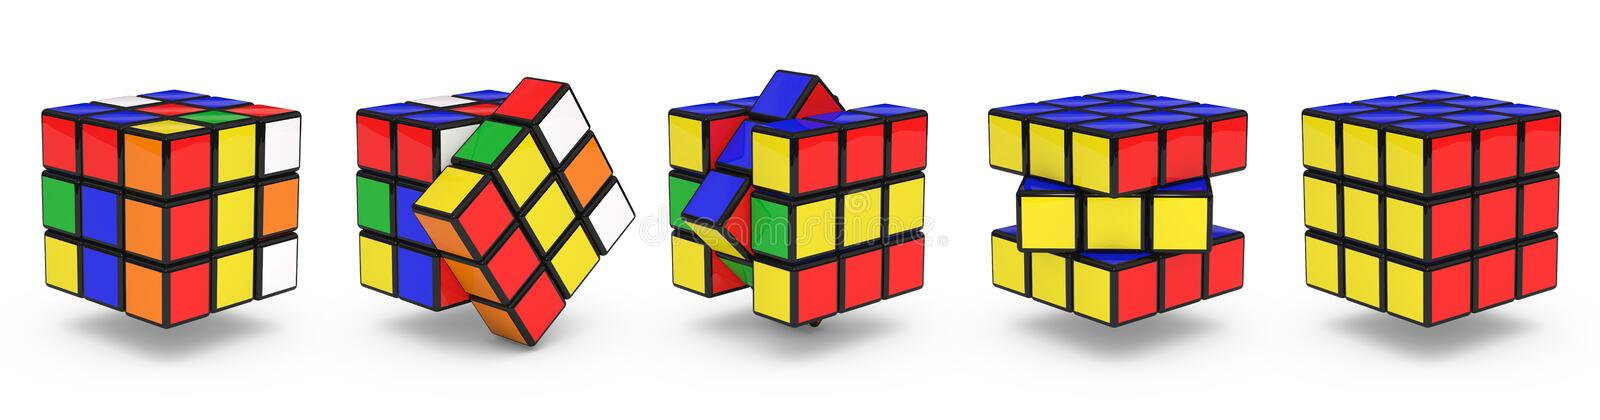 Les cubes de Rubik illustration de vecteur